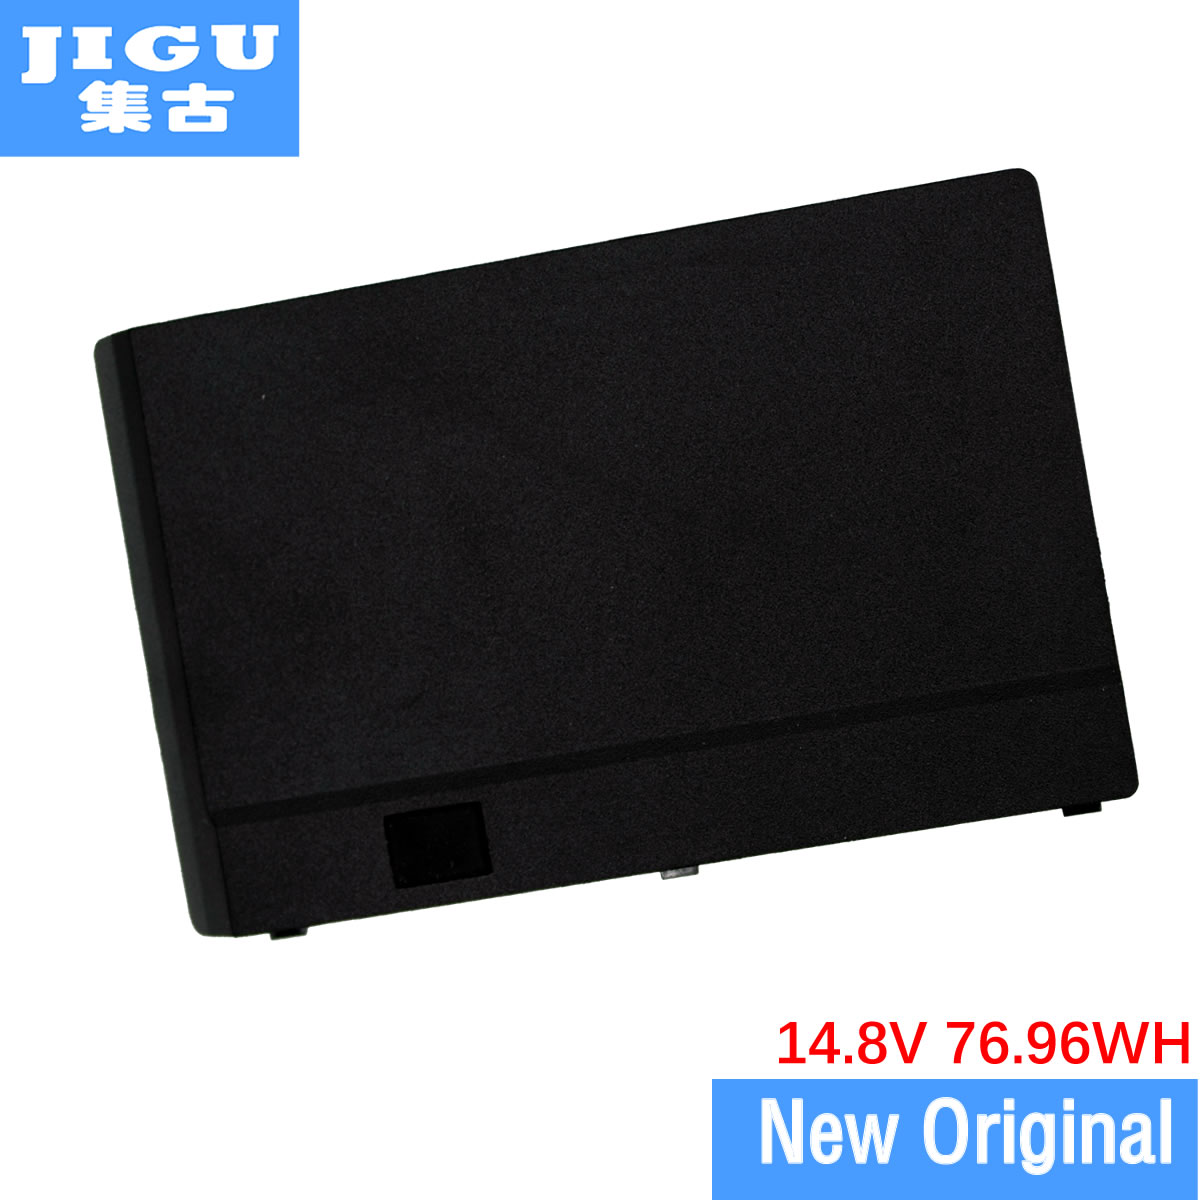 JIGU laptop battery W370BAT-3 W370BAT-8 FOR CLEVO K660E W350ETQ W350STQ W370ST XMG A503 A504 P2742 P2742G FOR Sager 7358 jigu laptop battery for dell 8858x 8p3yx 911md vostro 3460 3560 latitude e6120 e6420 e6520 4400mah